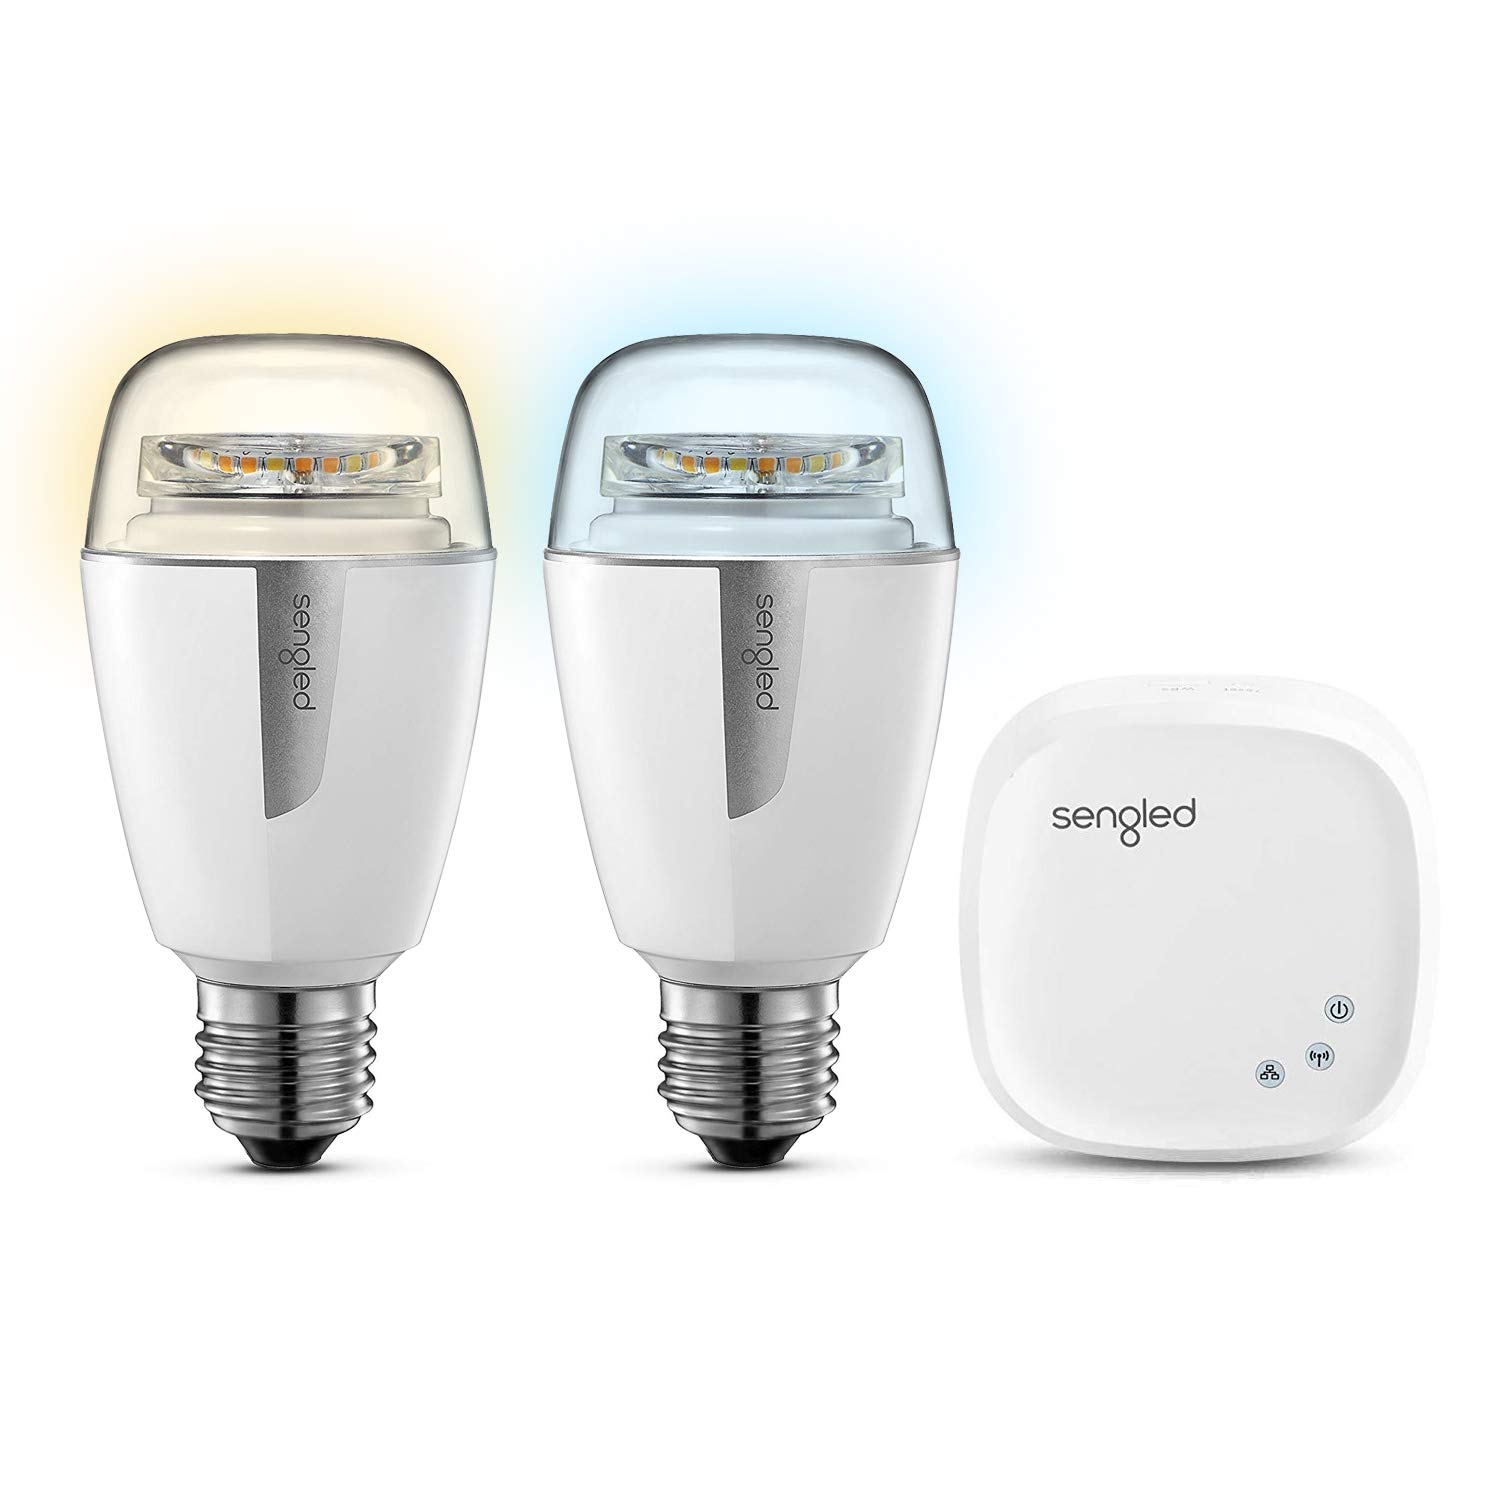 Sengled Element Smart LED Lampe, E27, dimmbar, warm-kaltweiß 2700-6500K, Starter Set (2 A60 Lampen und 1 Hub), steuerbar via App, kompatibel mit Amazon Alexa und Google Assistant, 9,8W